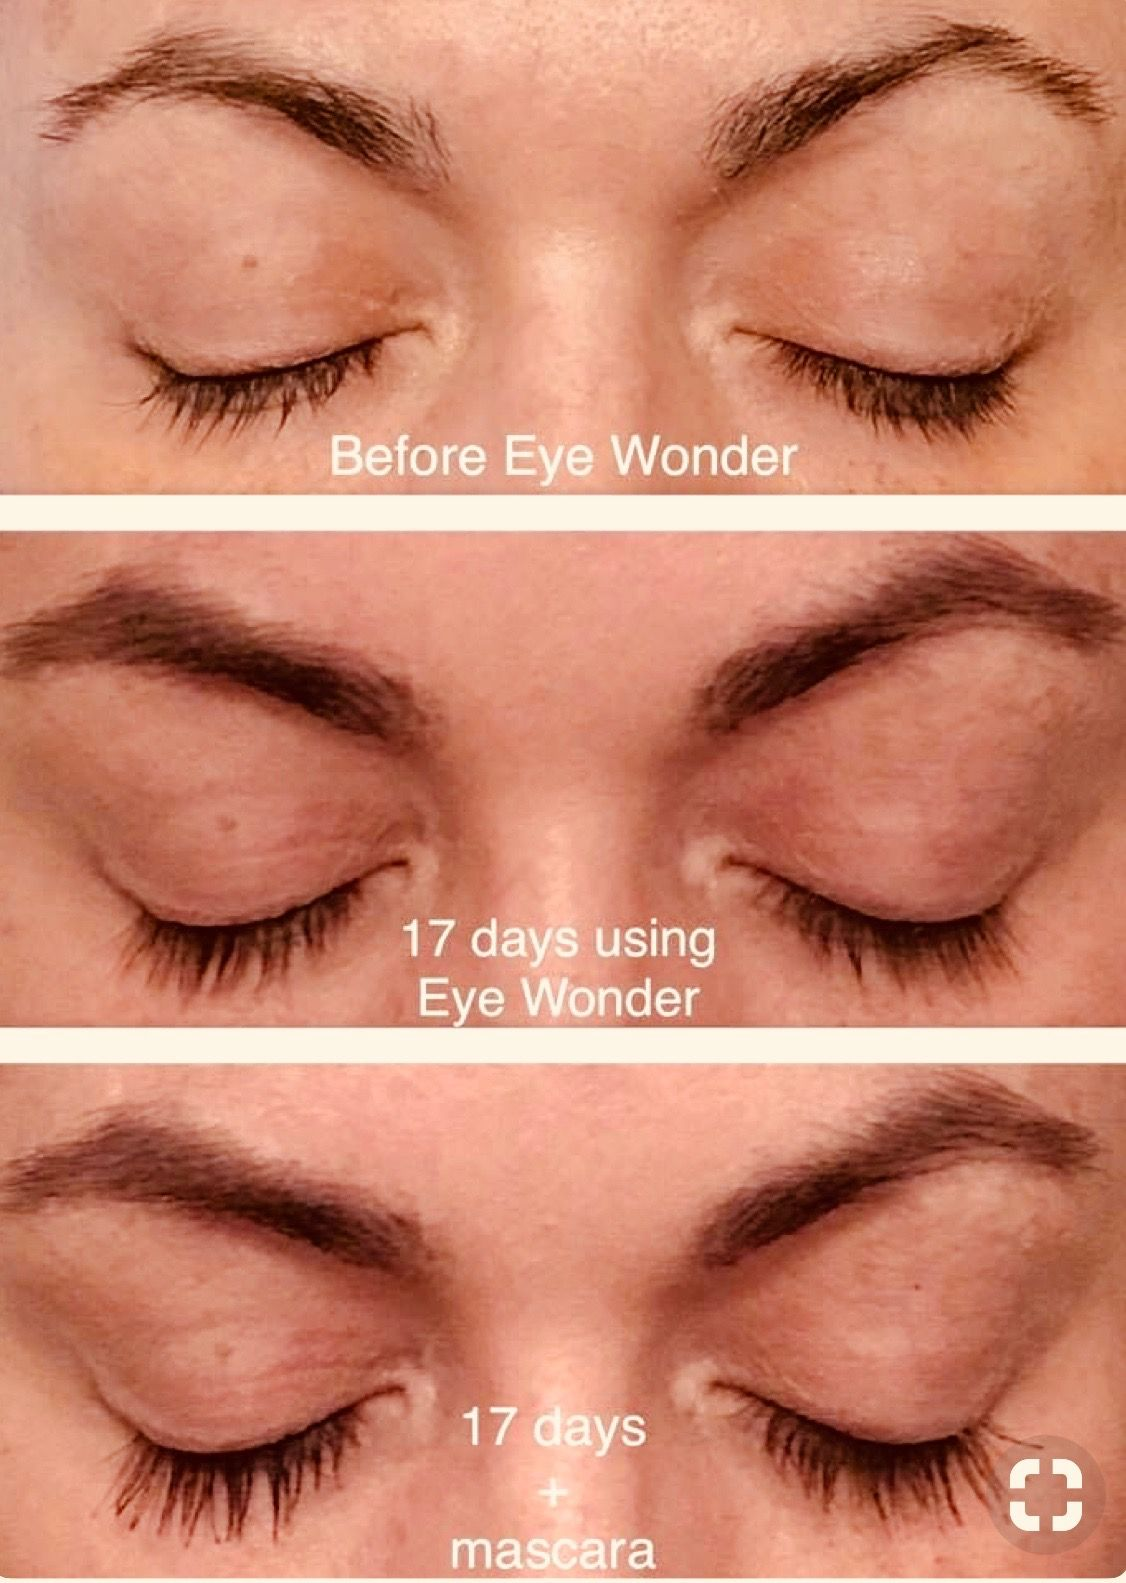 ab8096080bd Eye Wonder is a high-performance serum formulated with clinically proven  ingredients such as Capixyl